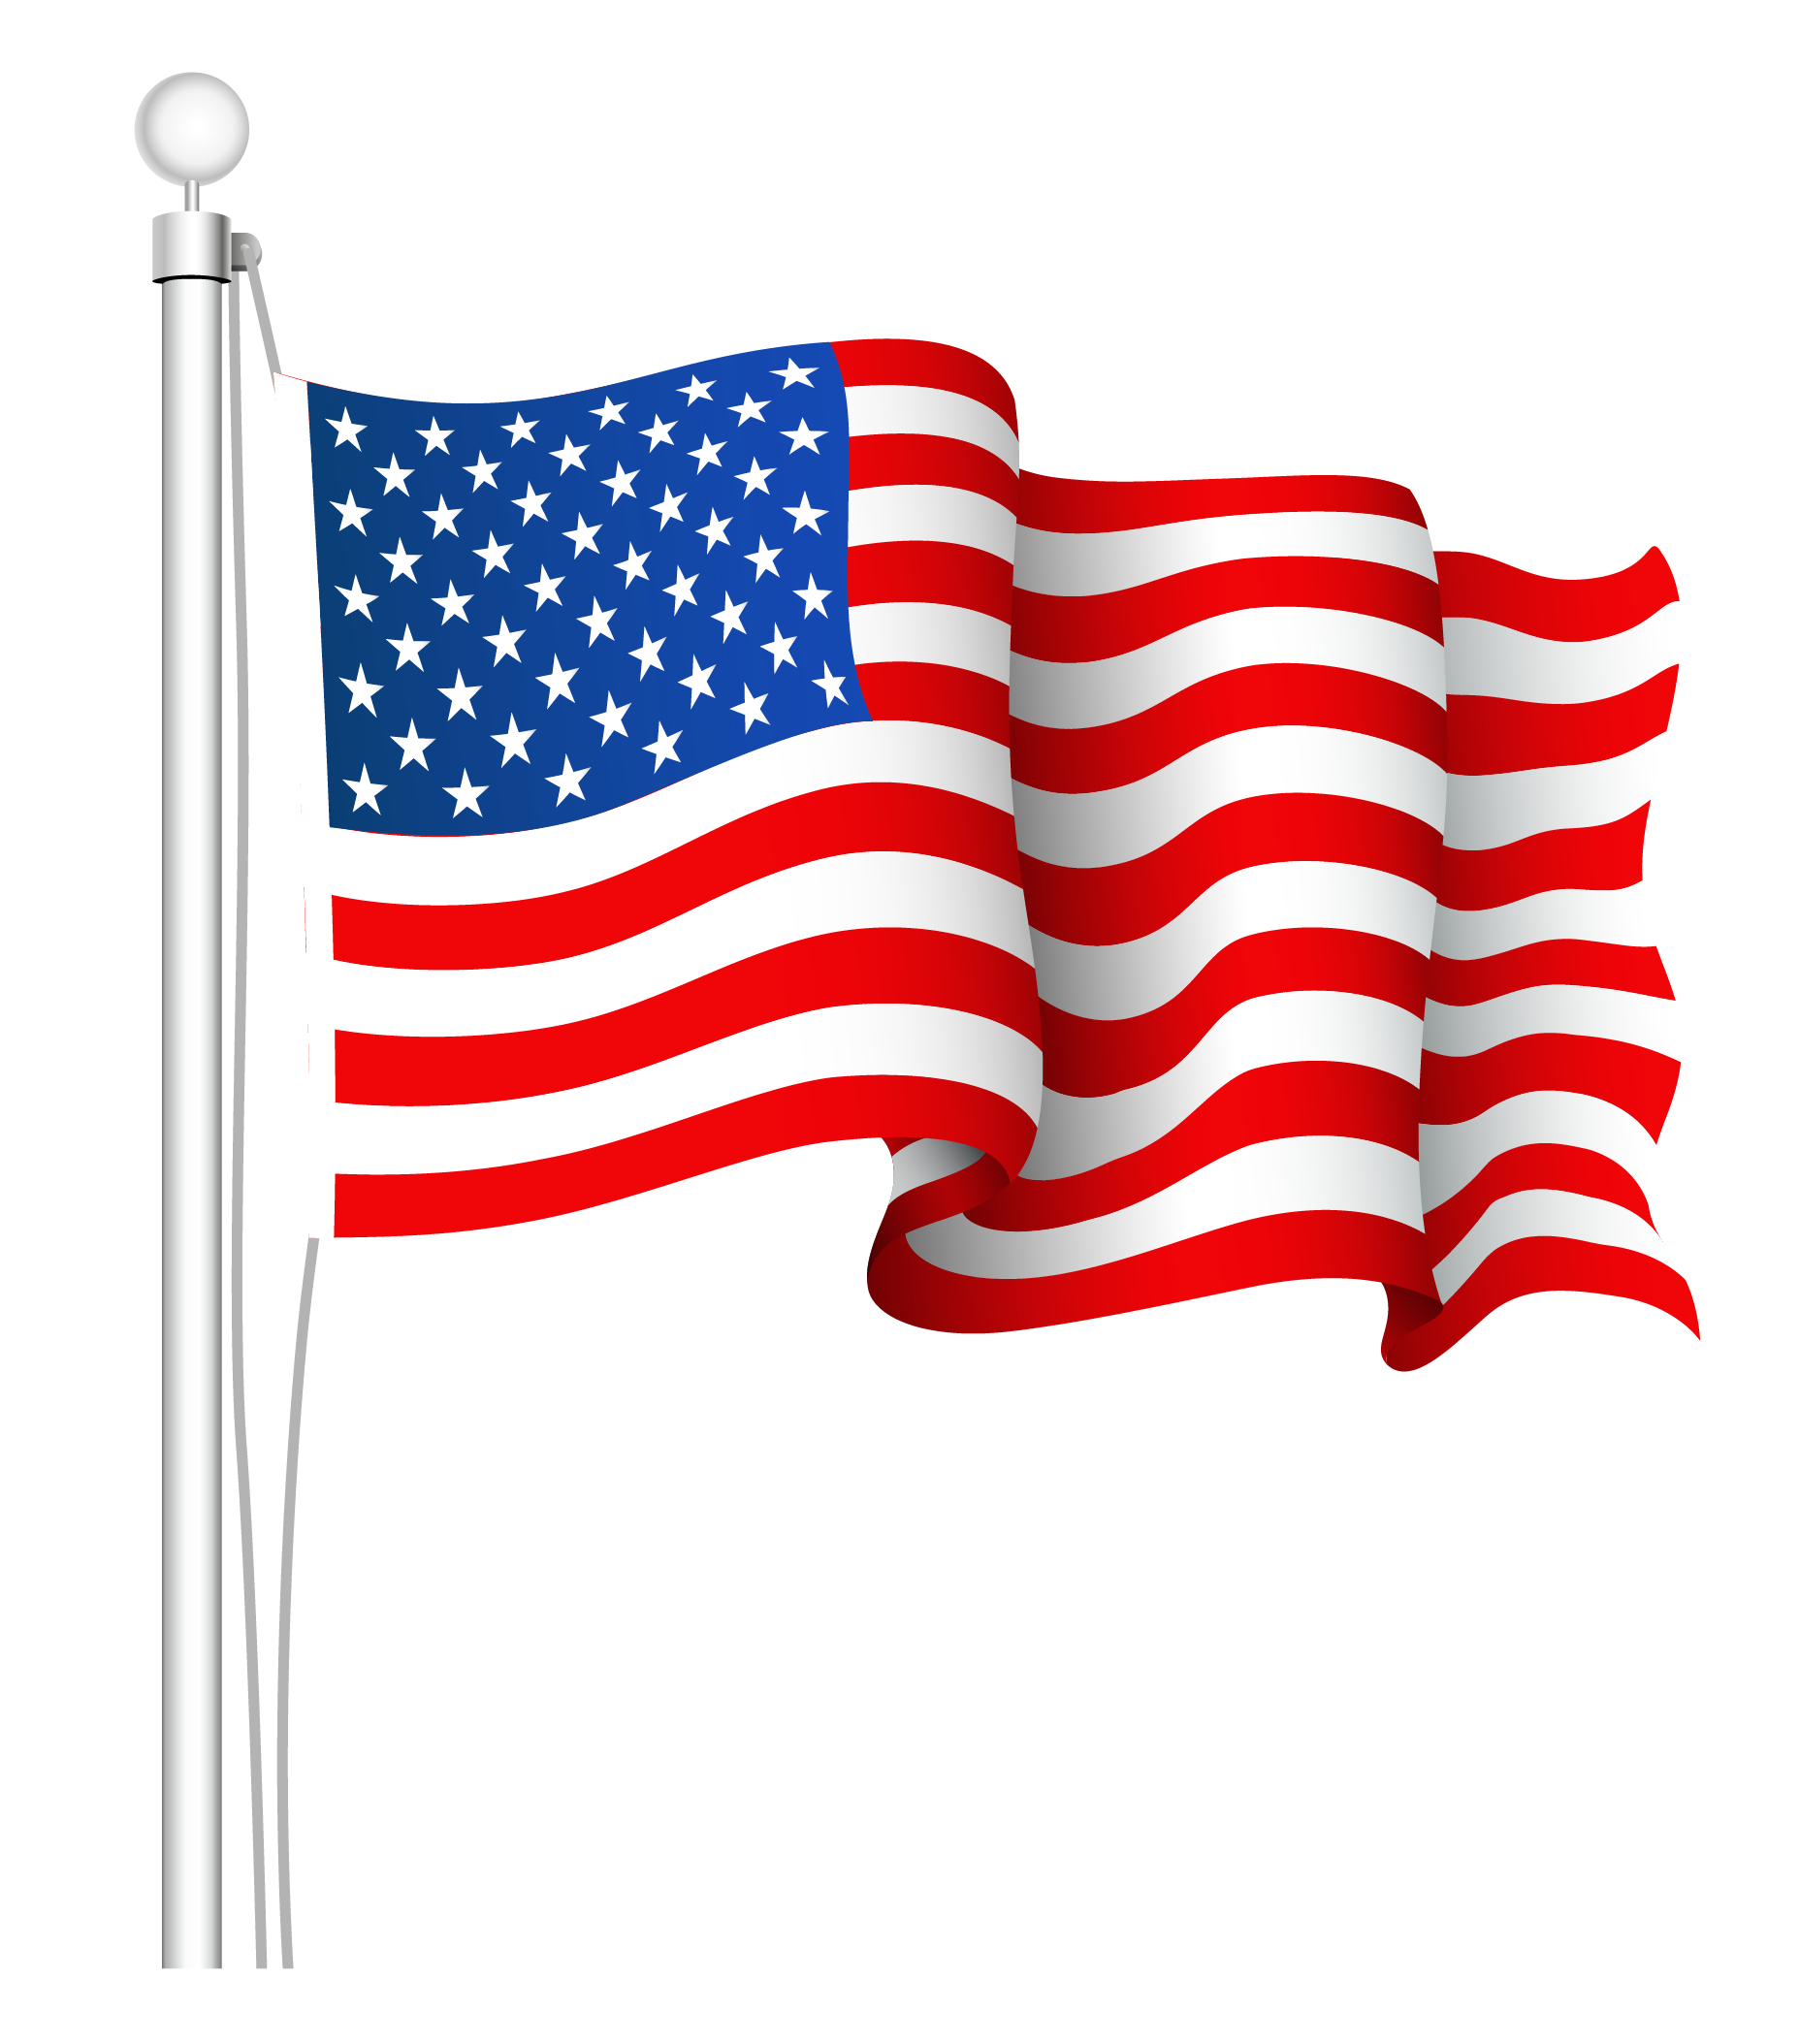 American Flag clipart stars and stripes Clip free American flag art